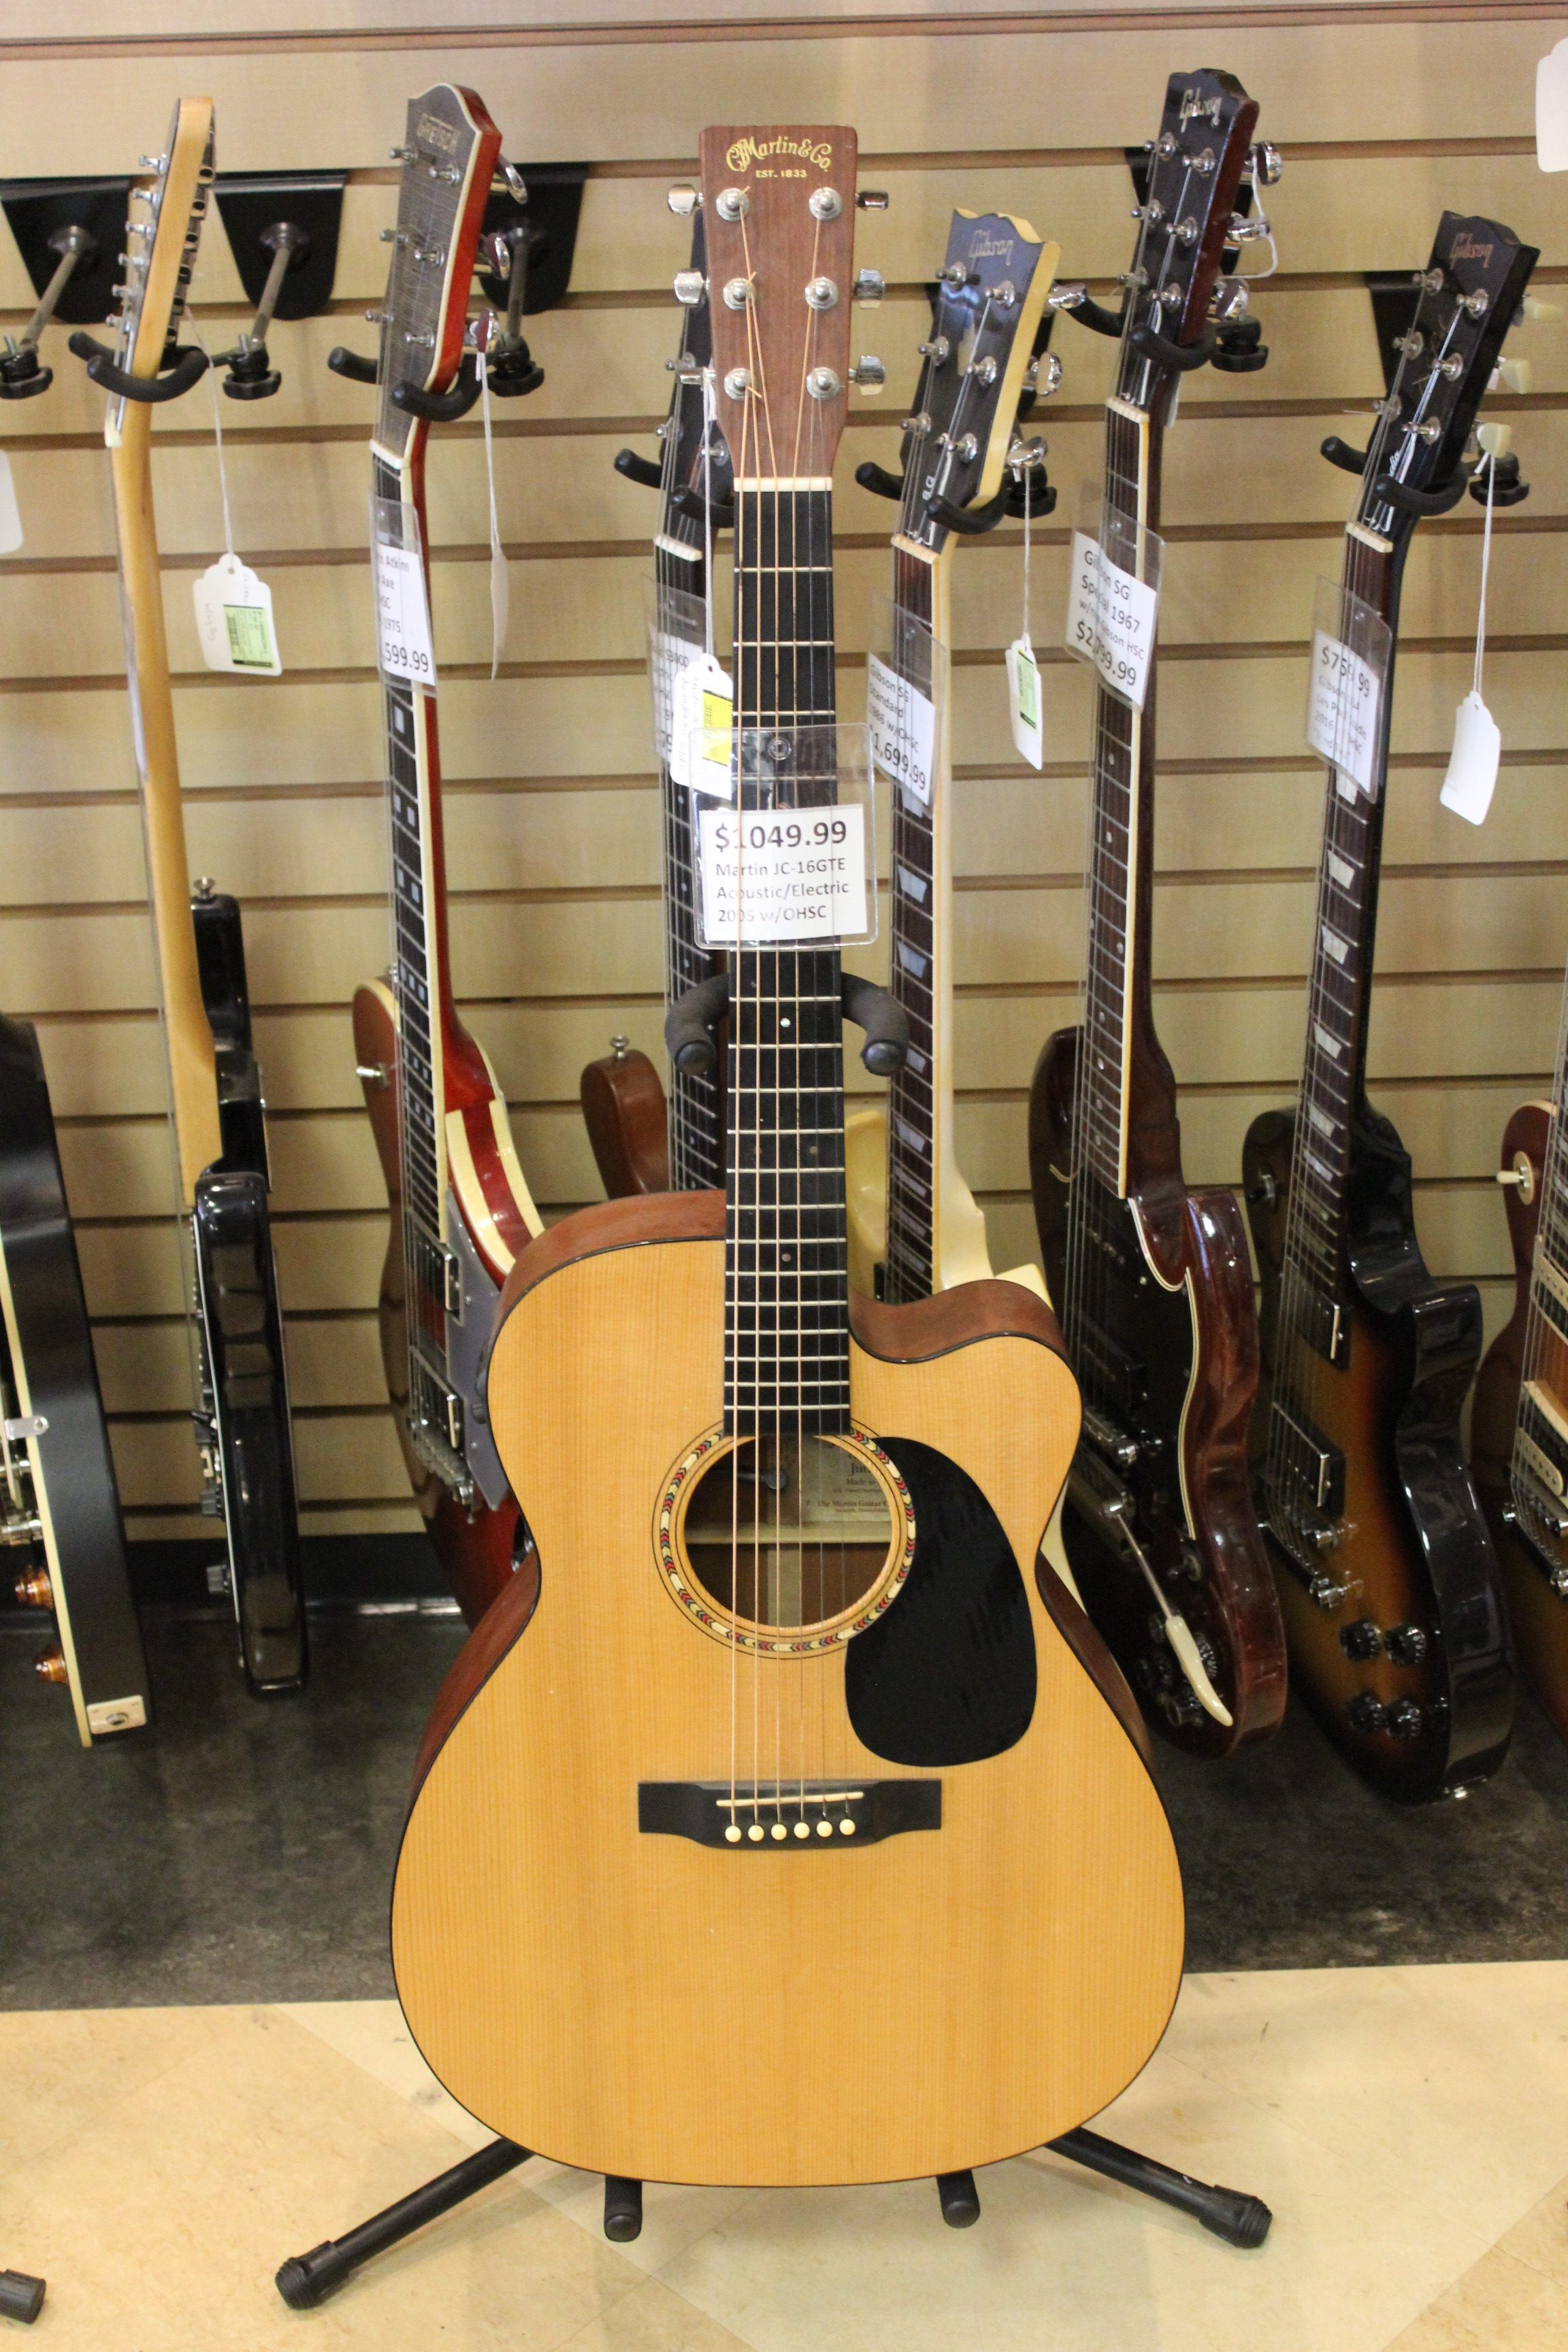 martin jc 16gte acoustic electric guitar 2005 used ted 39 s pawn shop. Black Bedroom Furniture Sets. Home Design Ideas